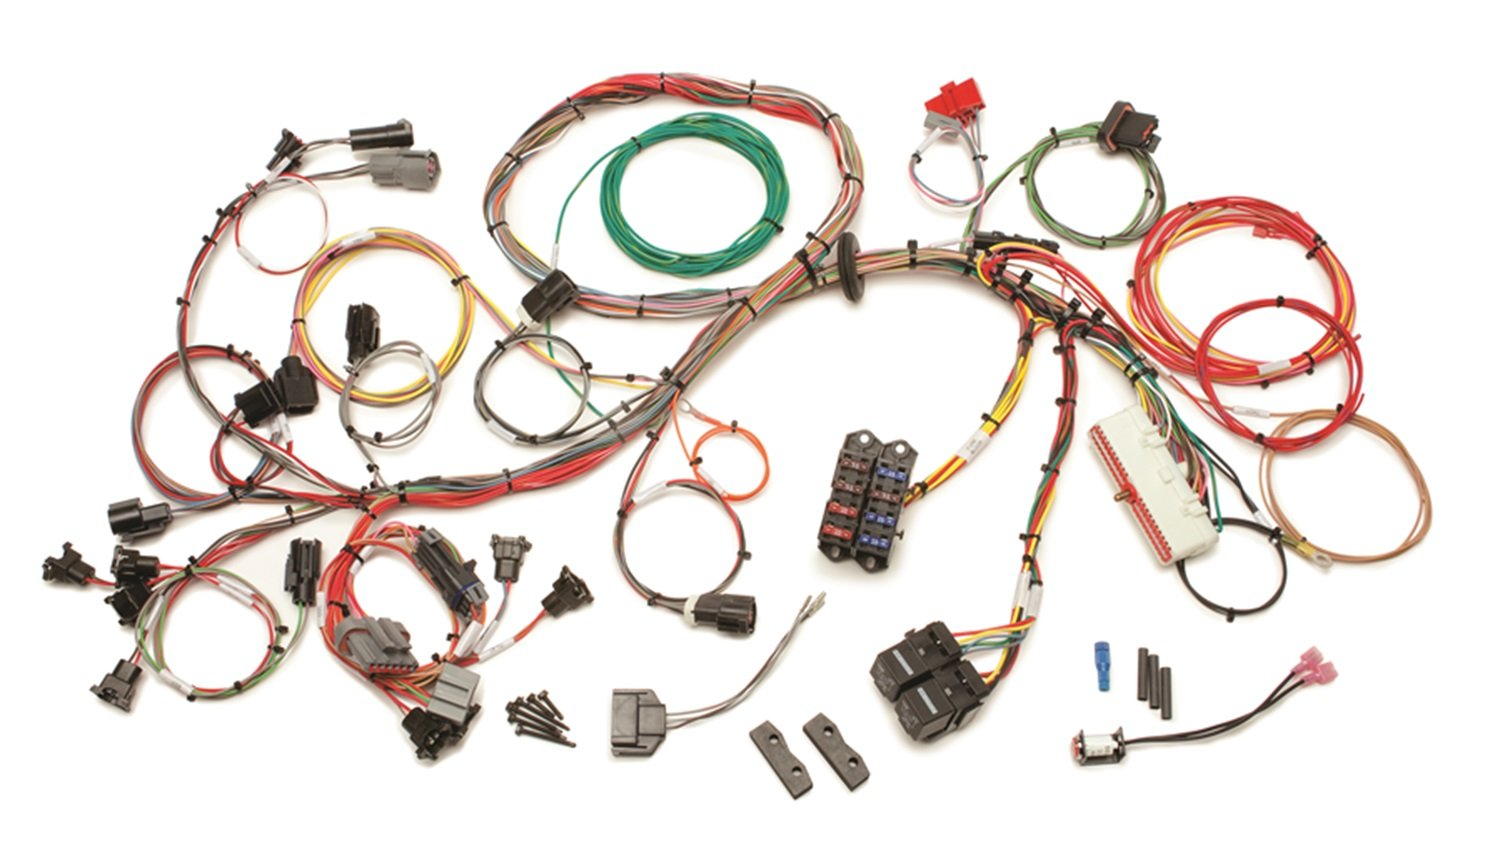 71UX1IBfleL._SL1500_ amazon com painless 60510 5 0l wiring harness automotive painless wiring harness at suagrazia.org